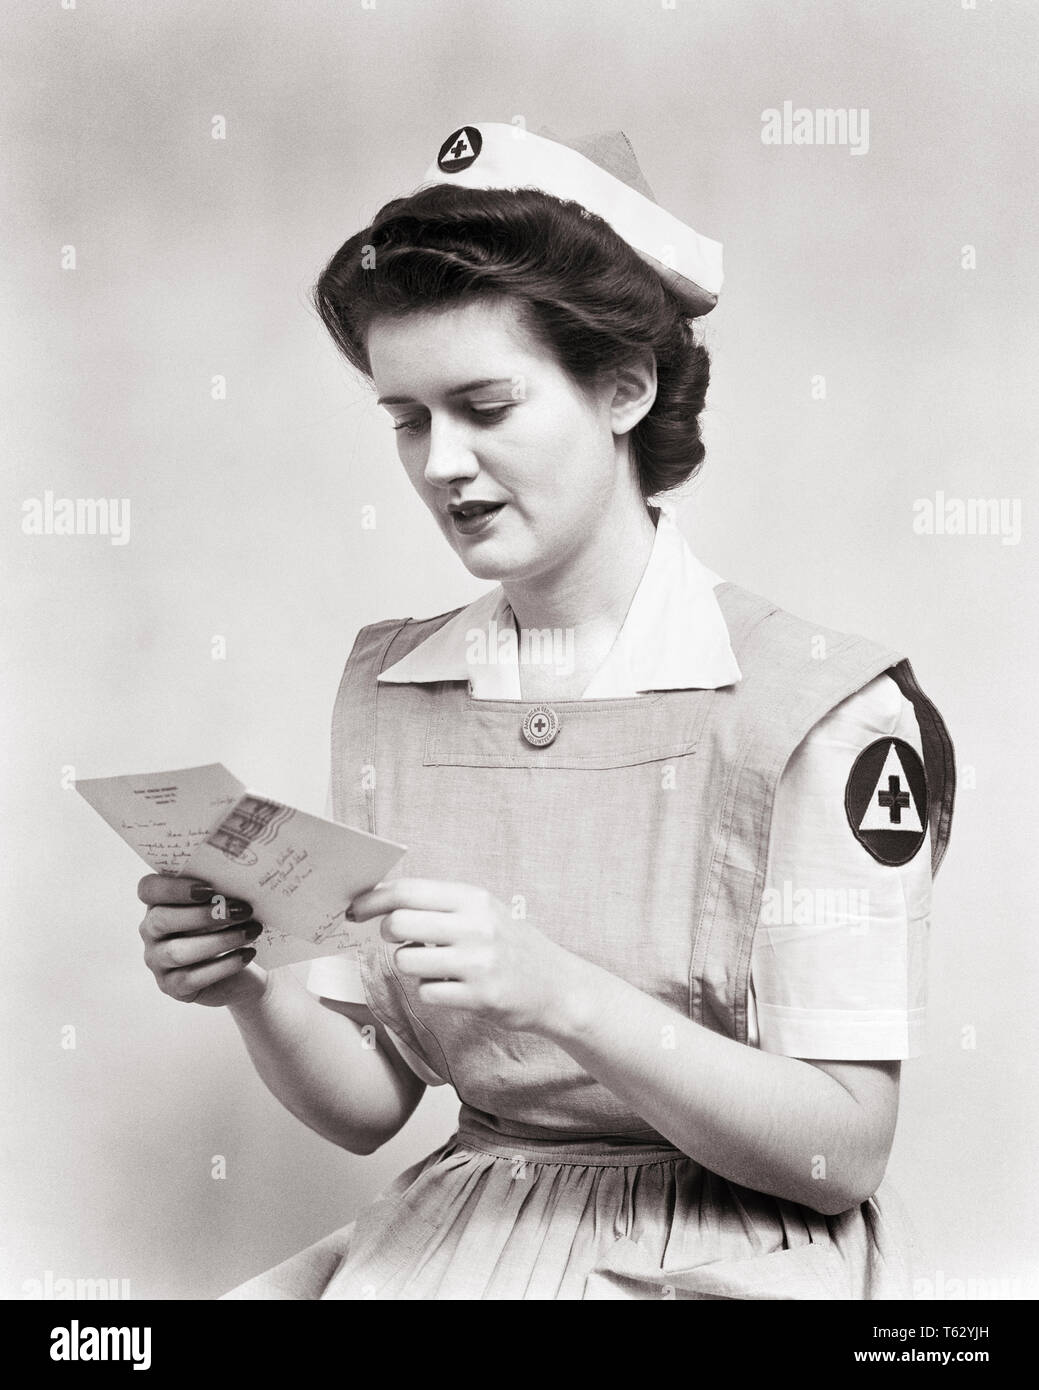 6be1a848141 1940s WOMAN SERVING VOLUNTEER RED CROSS NURSE WEARING UNIFORM SMOCK DRESS  AND CAP READING LETTER DURING